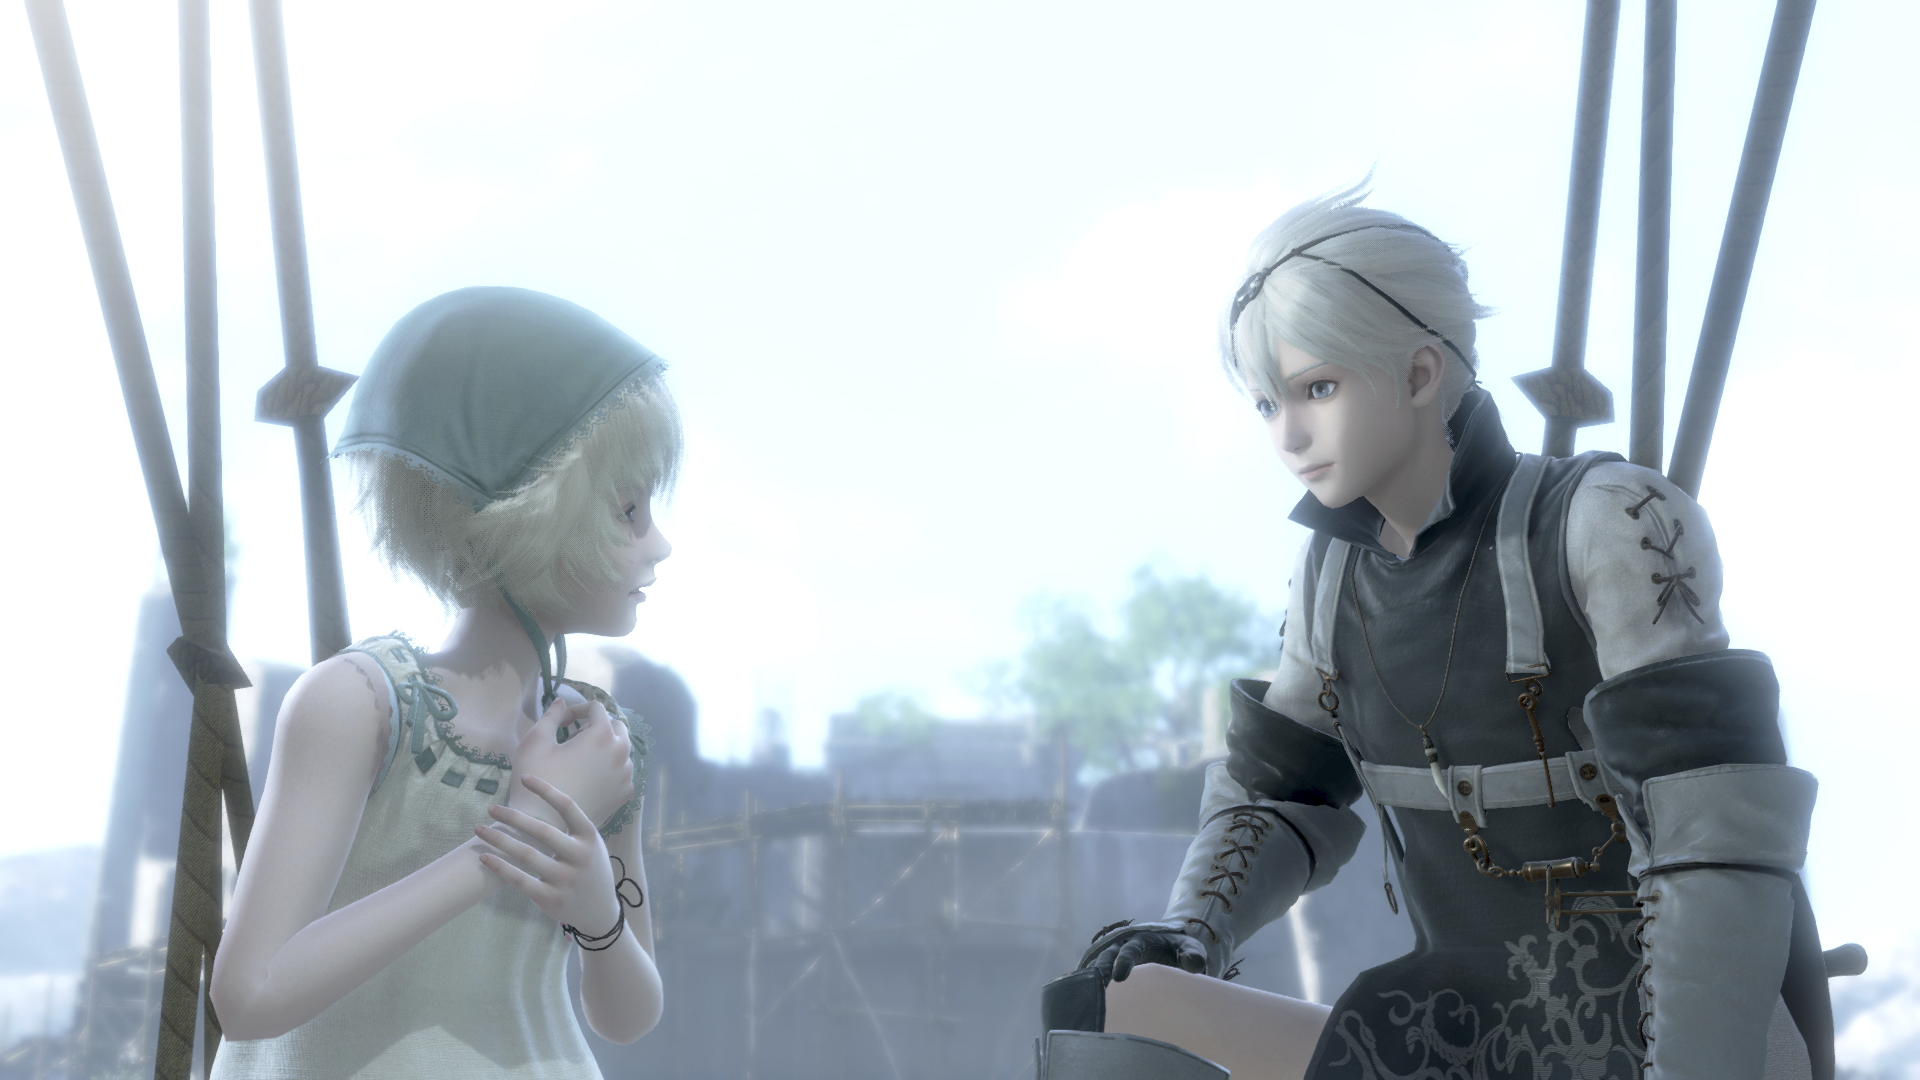 NieR Replicant ver.1.22474487139 screenshot